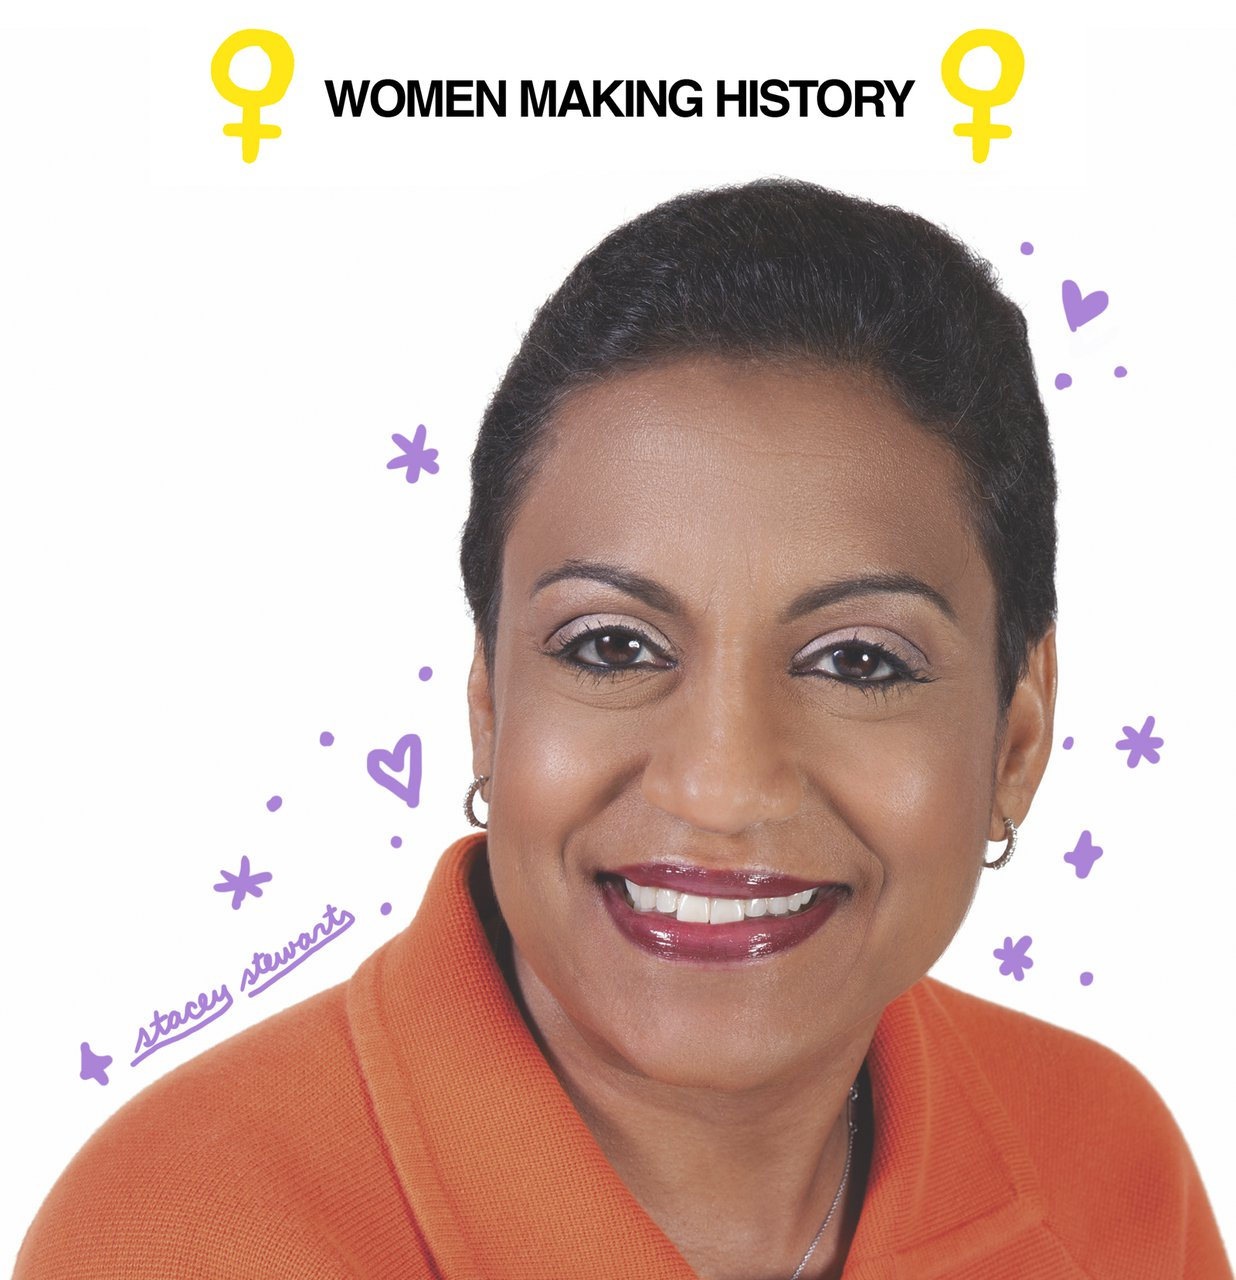 WOMEN MAKING HISTORY: STACEY STEWART